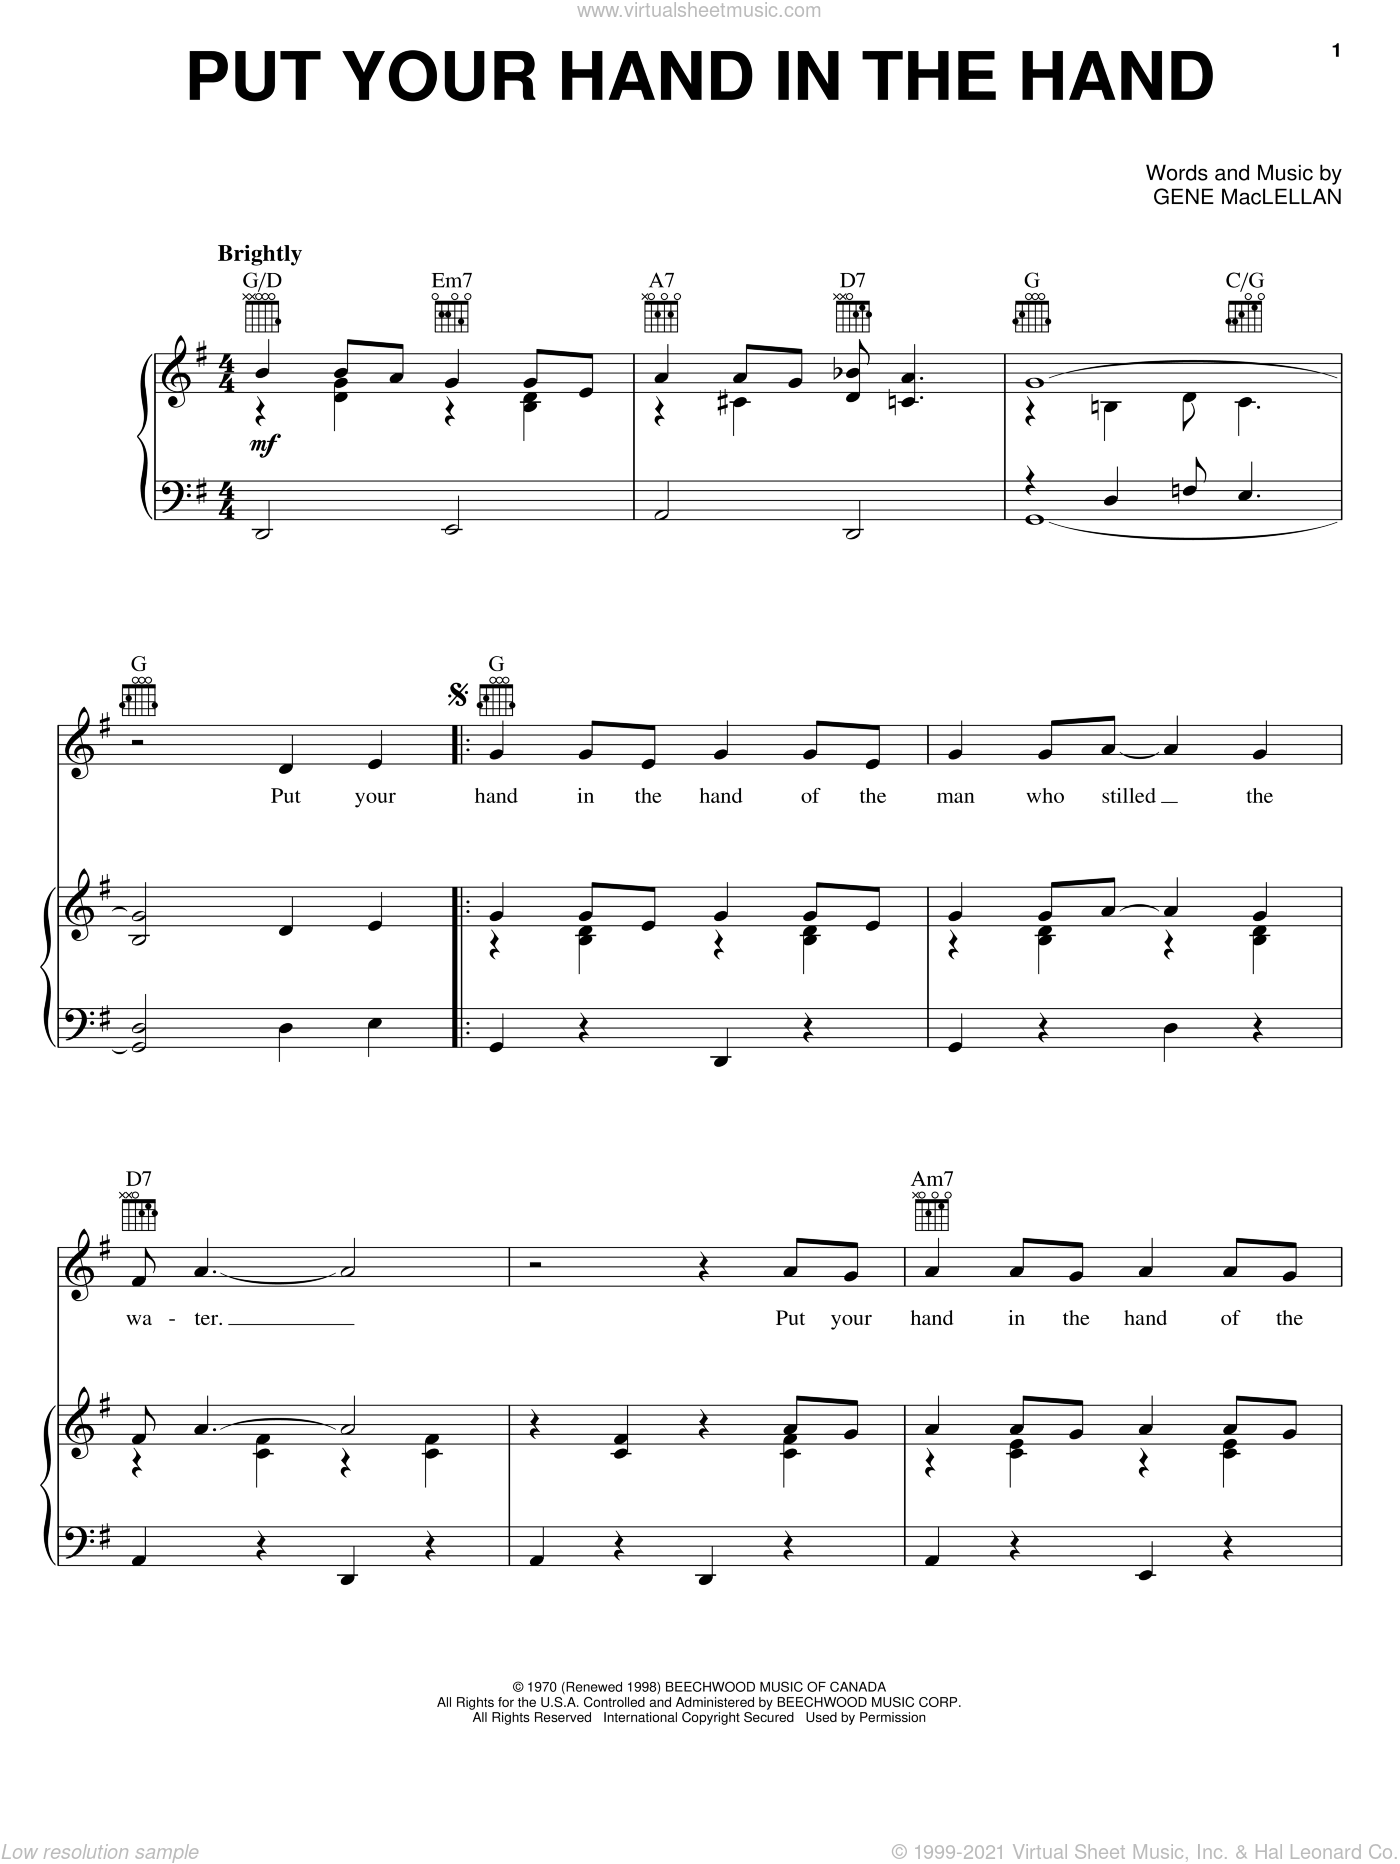 Put Your Hand In The Hand sheet music for voice, piano or guitar by Gene MacLellan, Anne Murray and MacLellan and Ocean, intermediate skill level